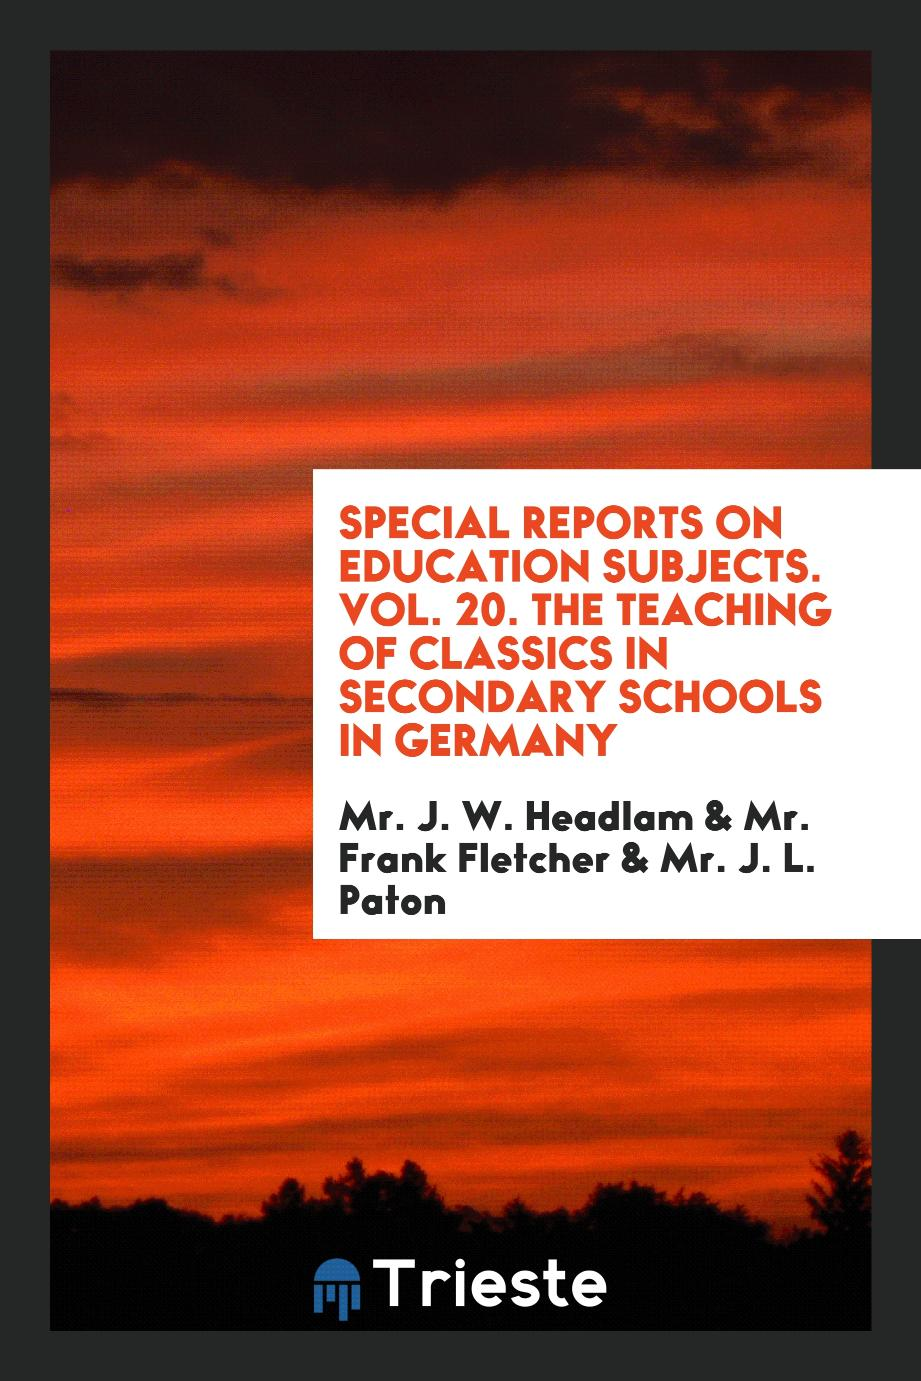 Special reports on education subjects. Vol. 20. The teaching of classics in secondary schools in Germany